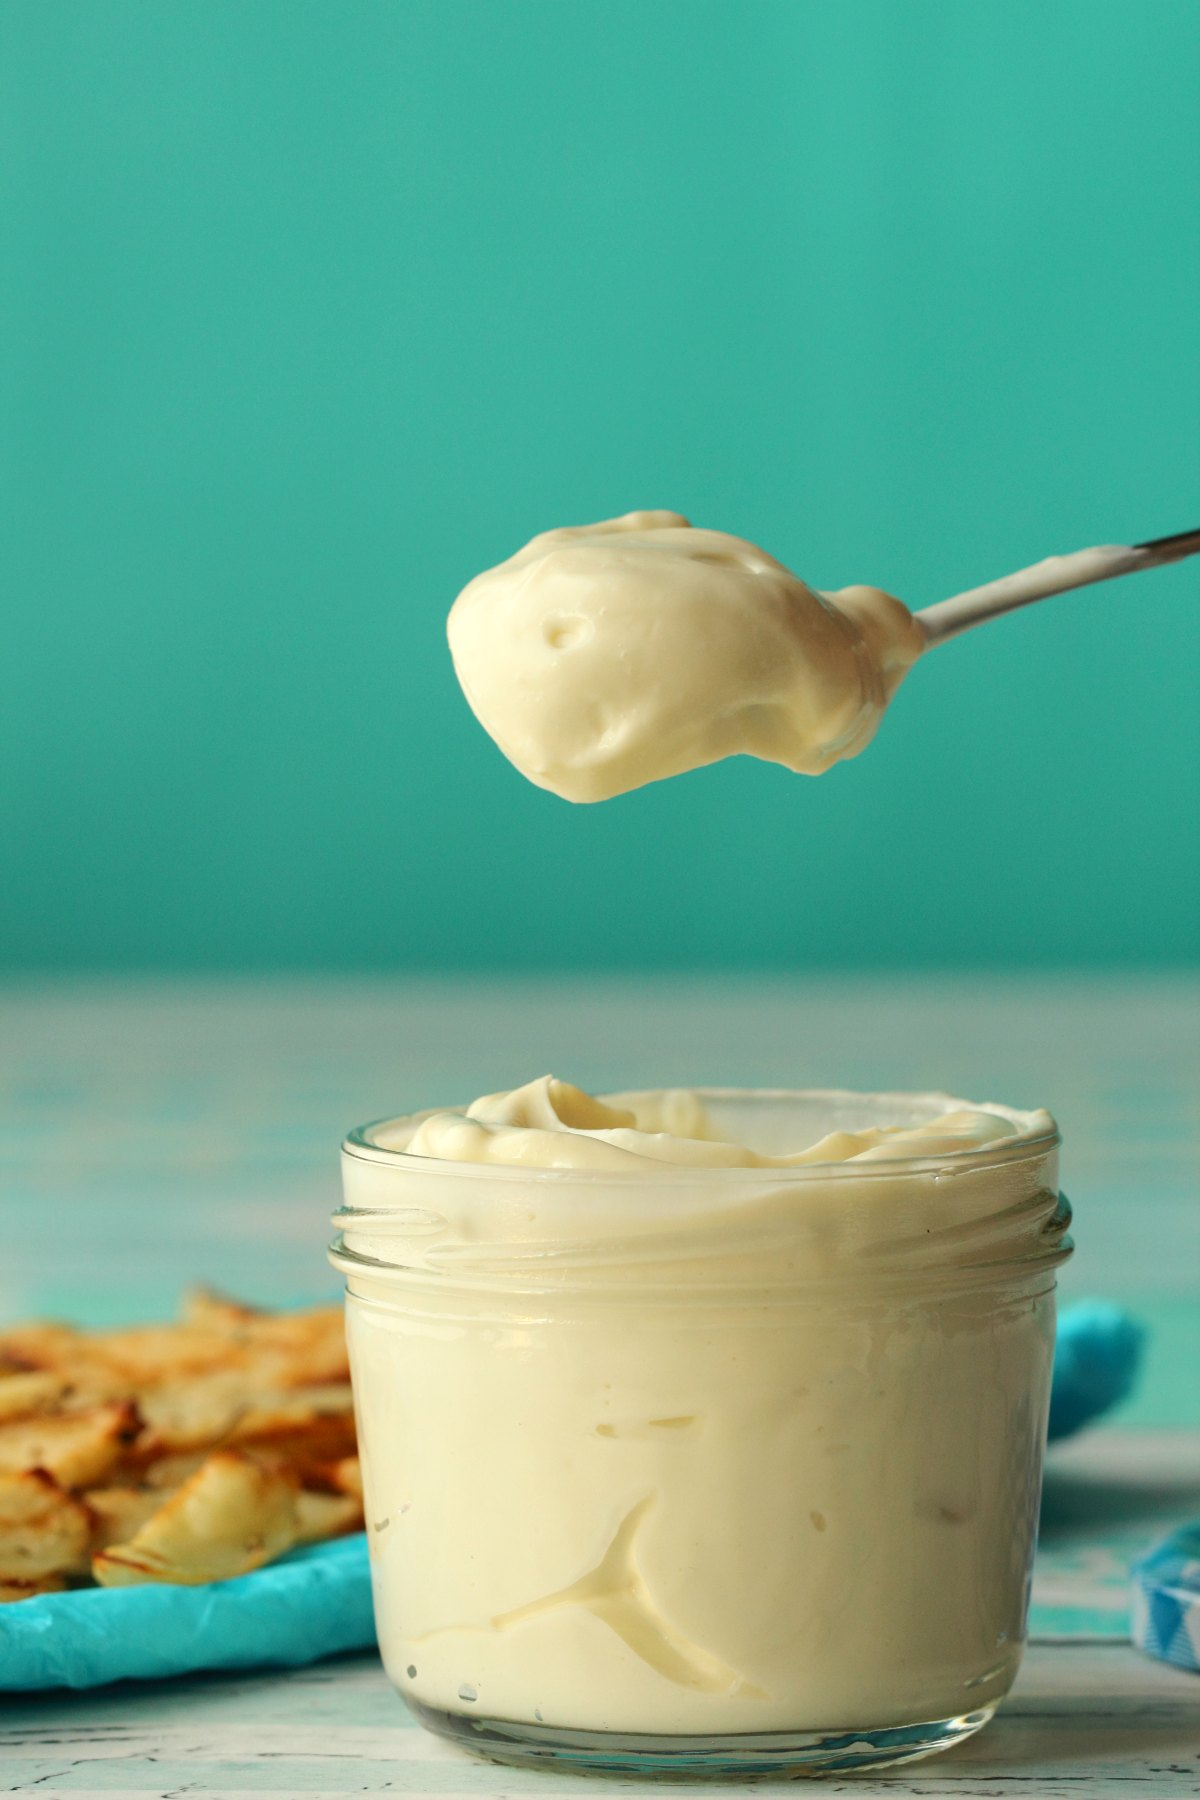 A spoonful of vegan mayo above a glass jar of mayo.